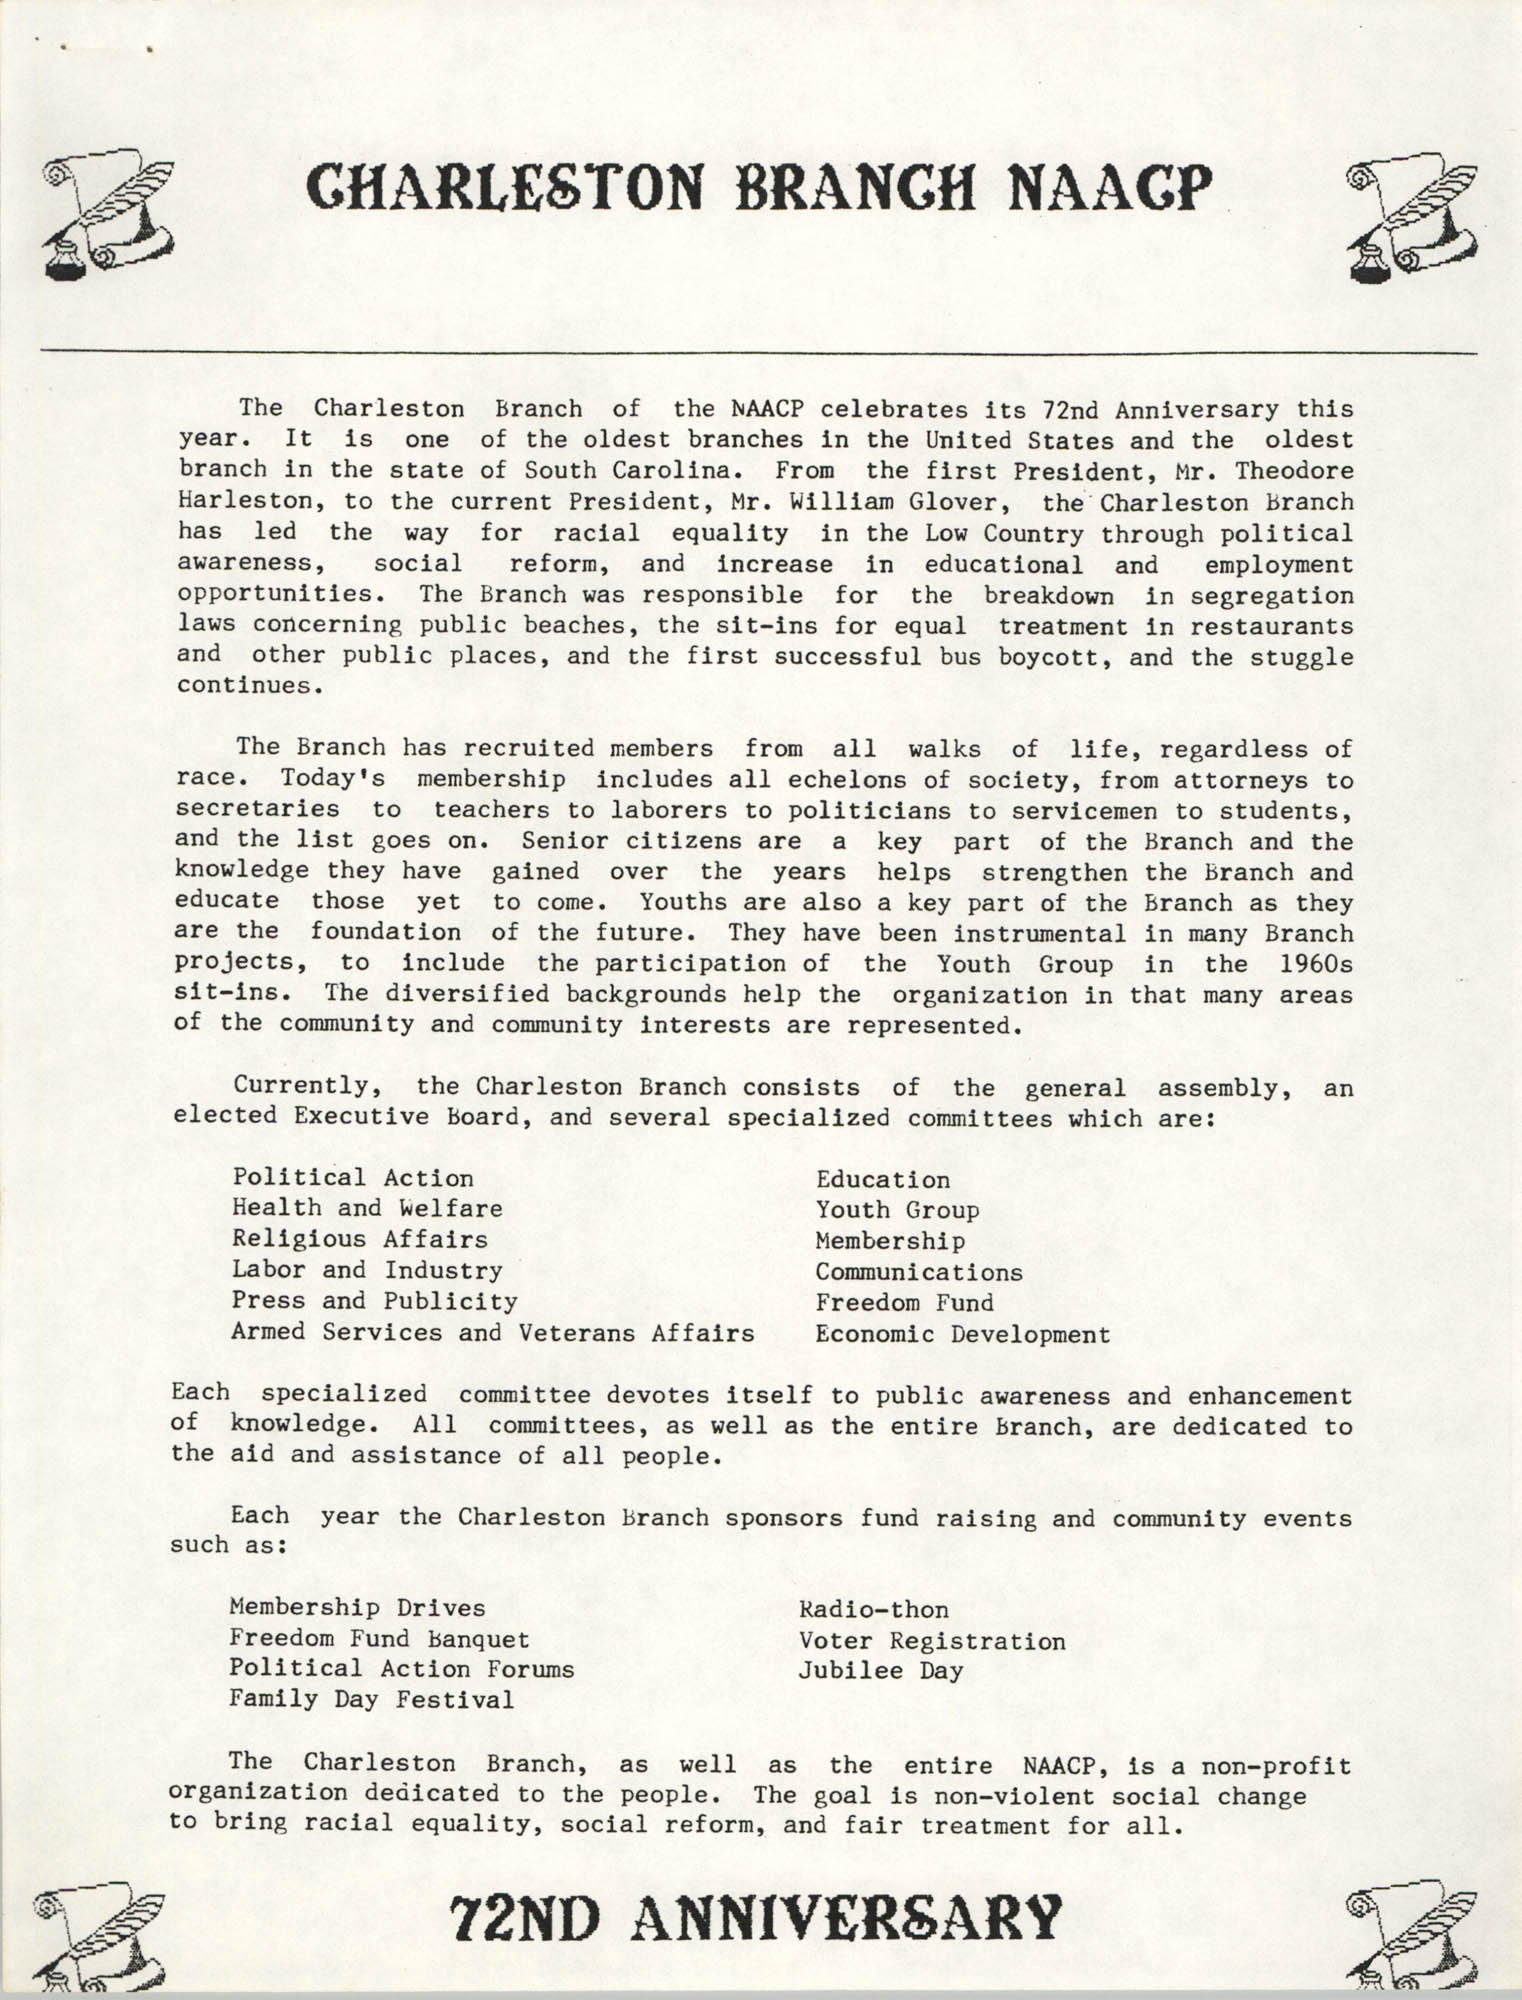 72nd Anniversary of the Charleston Branch of the NAACP Fundraising Document